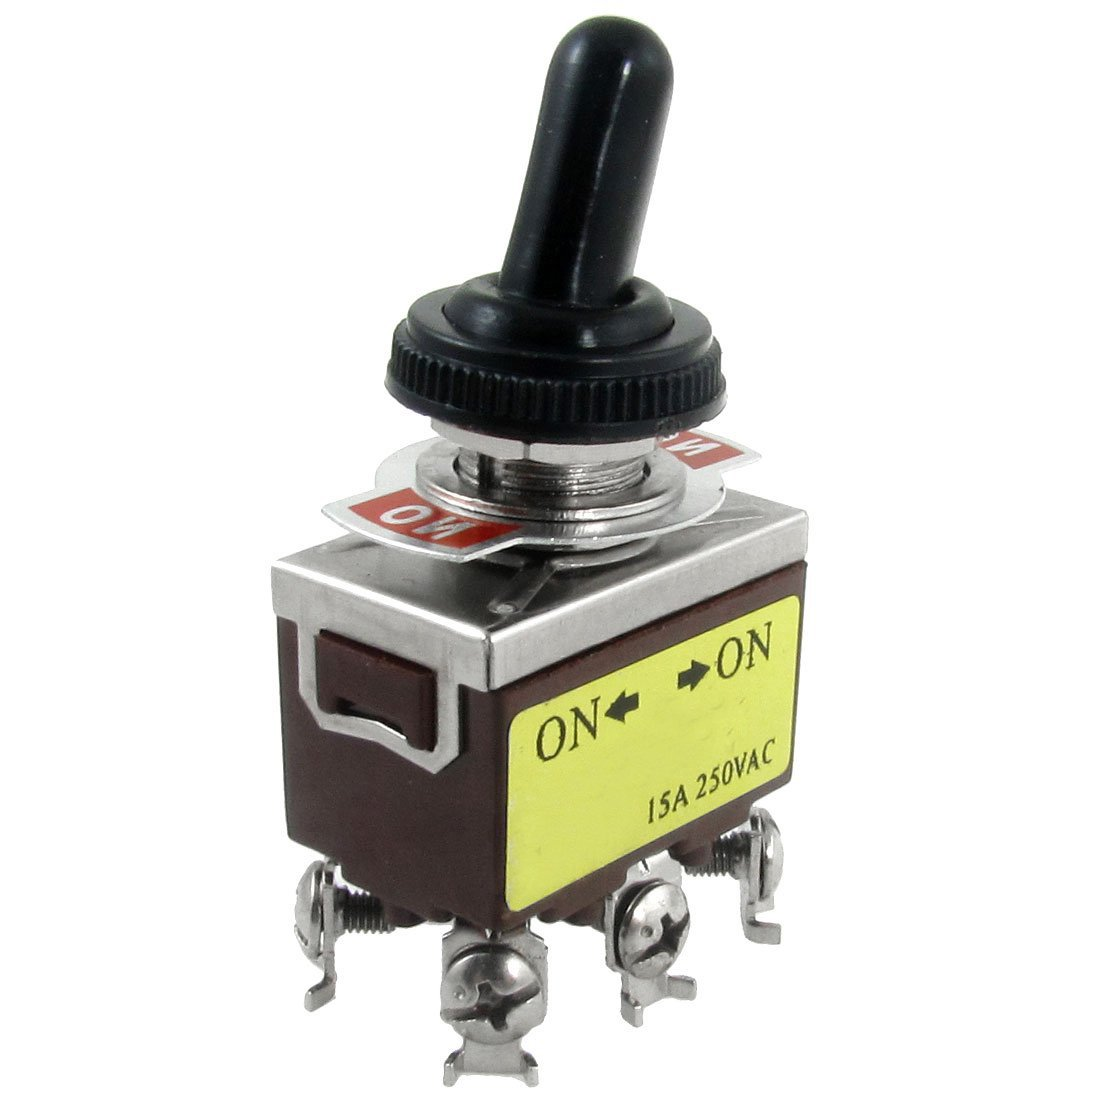 SODIAL(R) AC 250V 15A on/on 2 Position DPDT Toggle Switch with Waterproof Boot